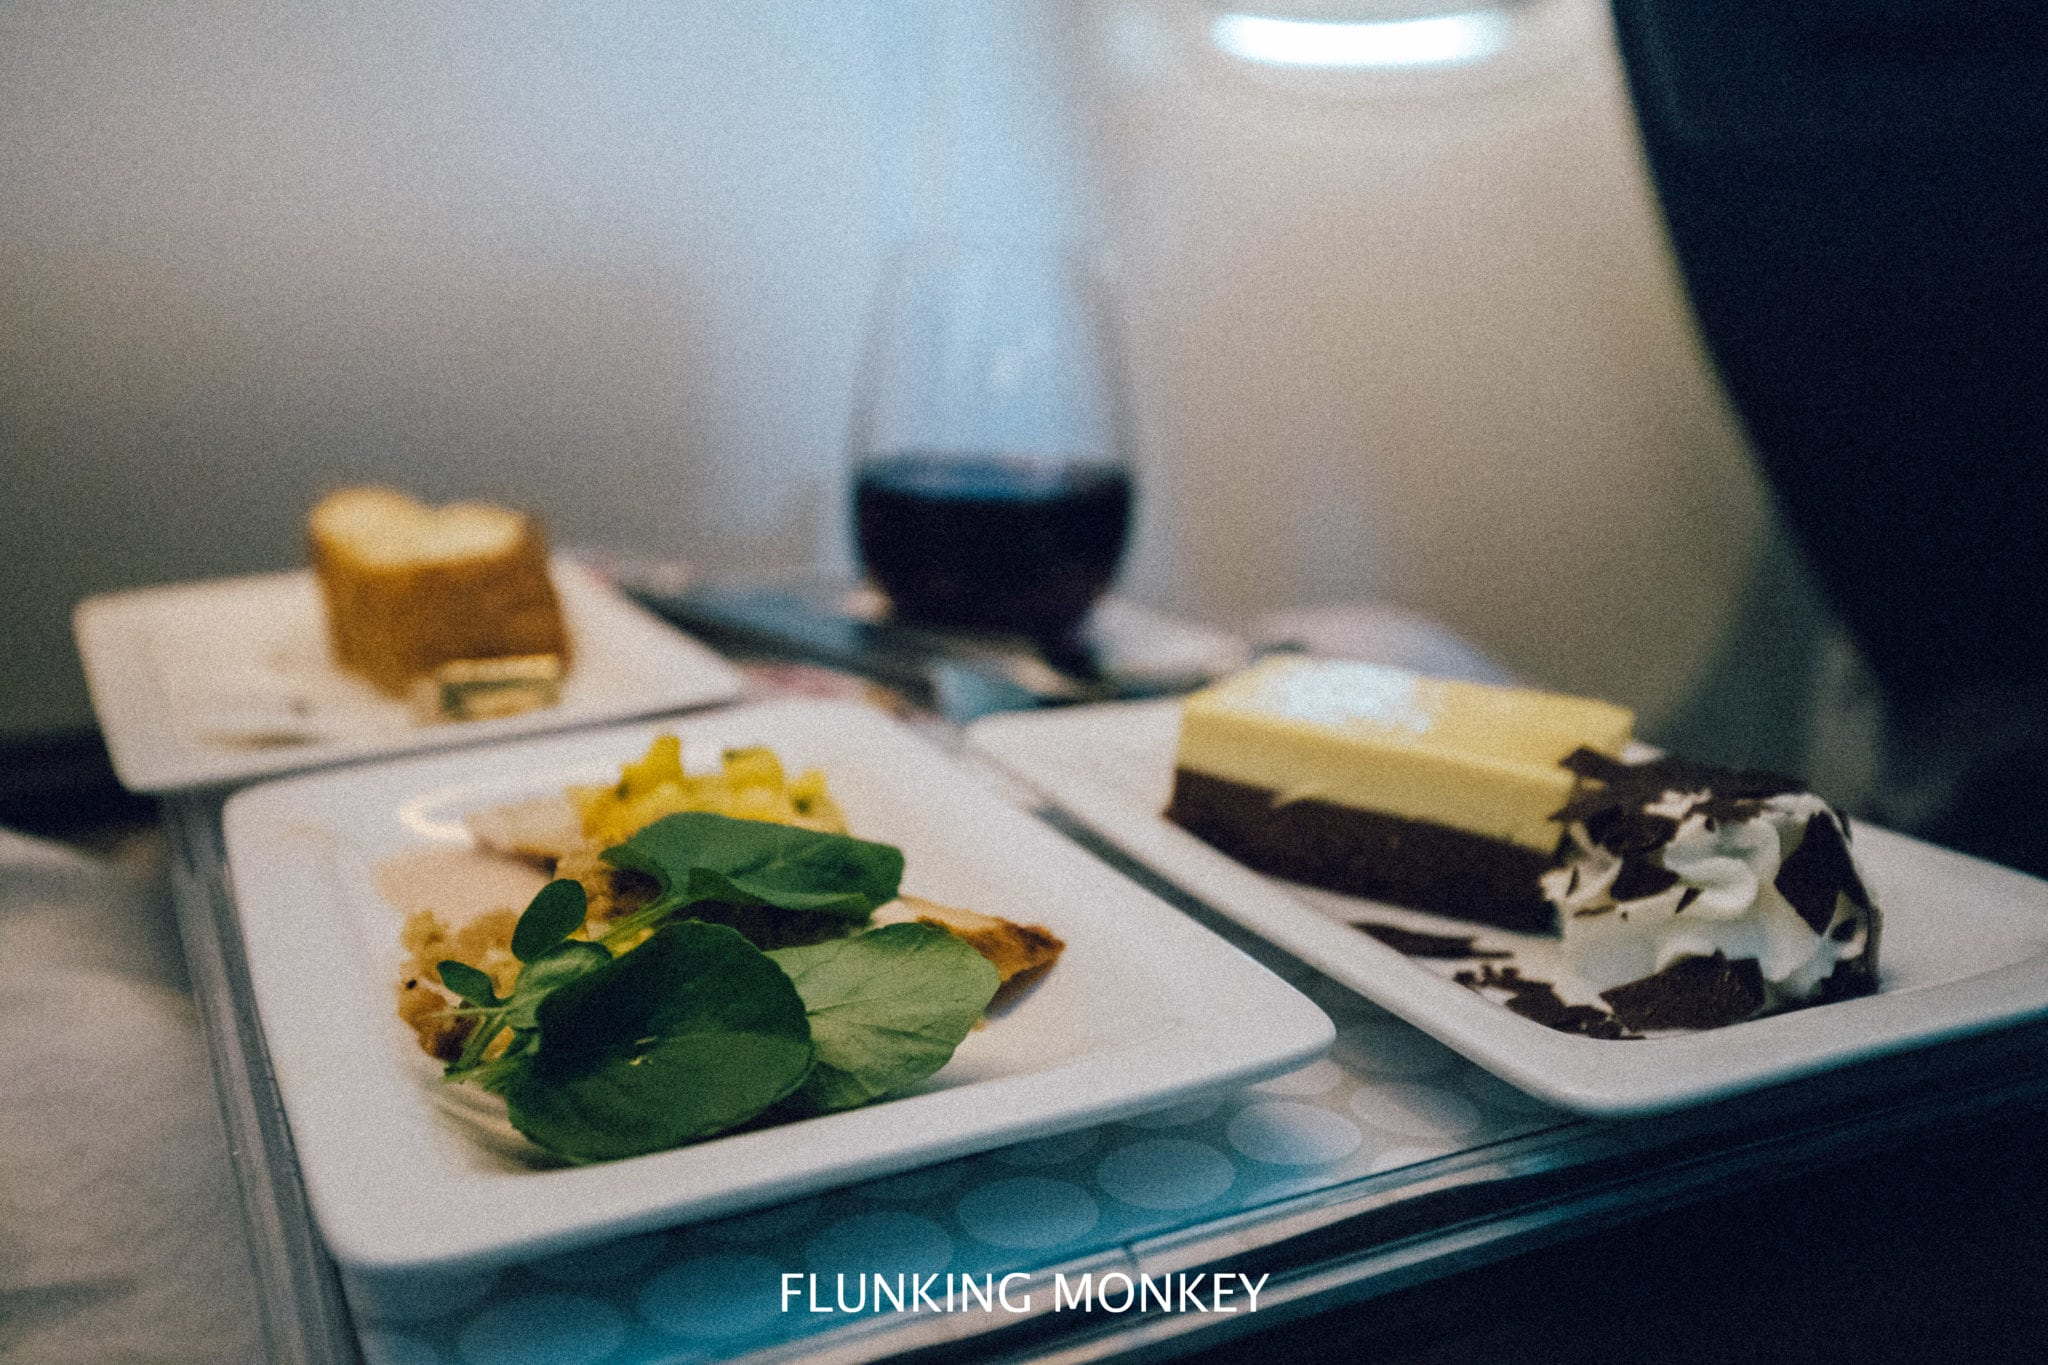 Air New Zealand - Flying With Airline Of The Year 2018 - Premium Economy Food - Flunking Monkey